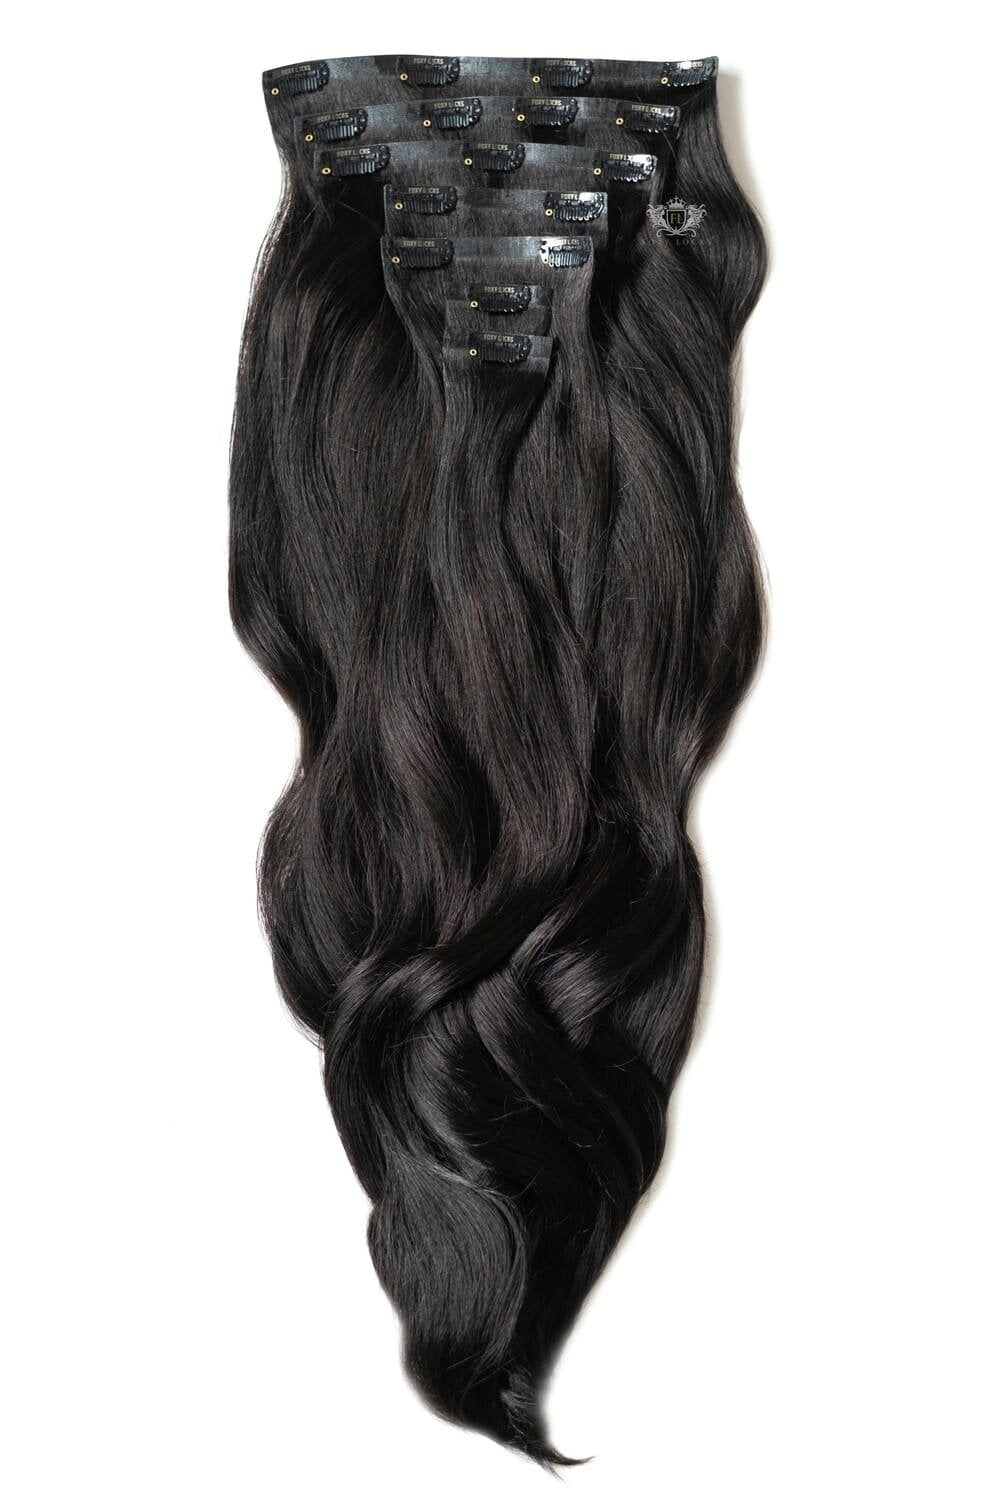 Brown Black Luxurious Seamless 24 Clip In Human Hair Extensions 280g